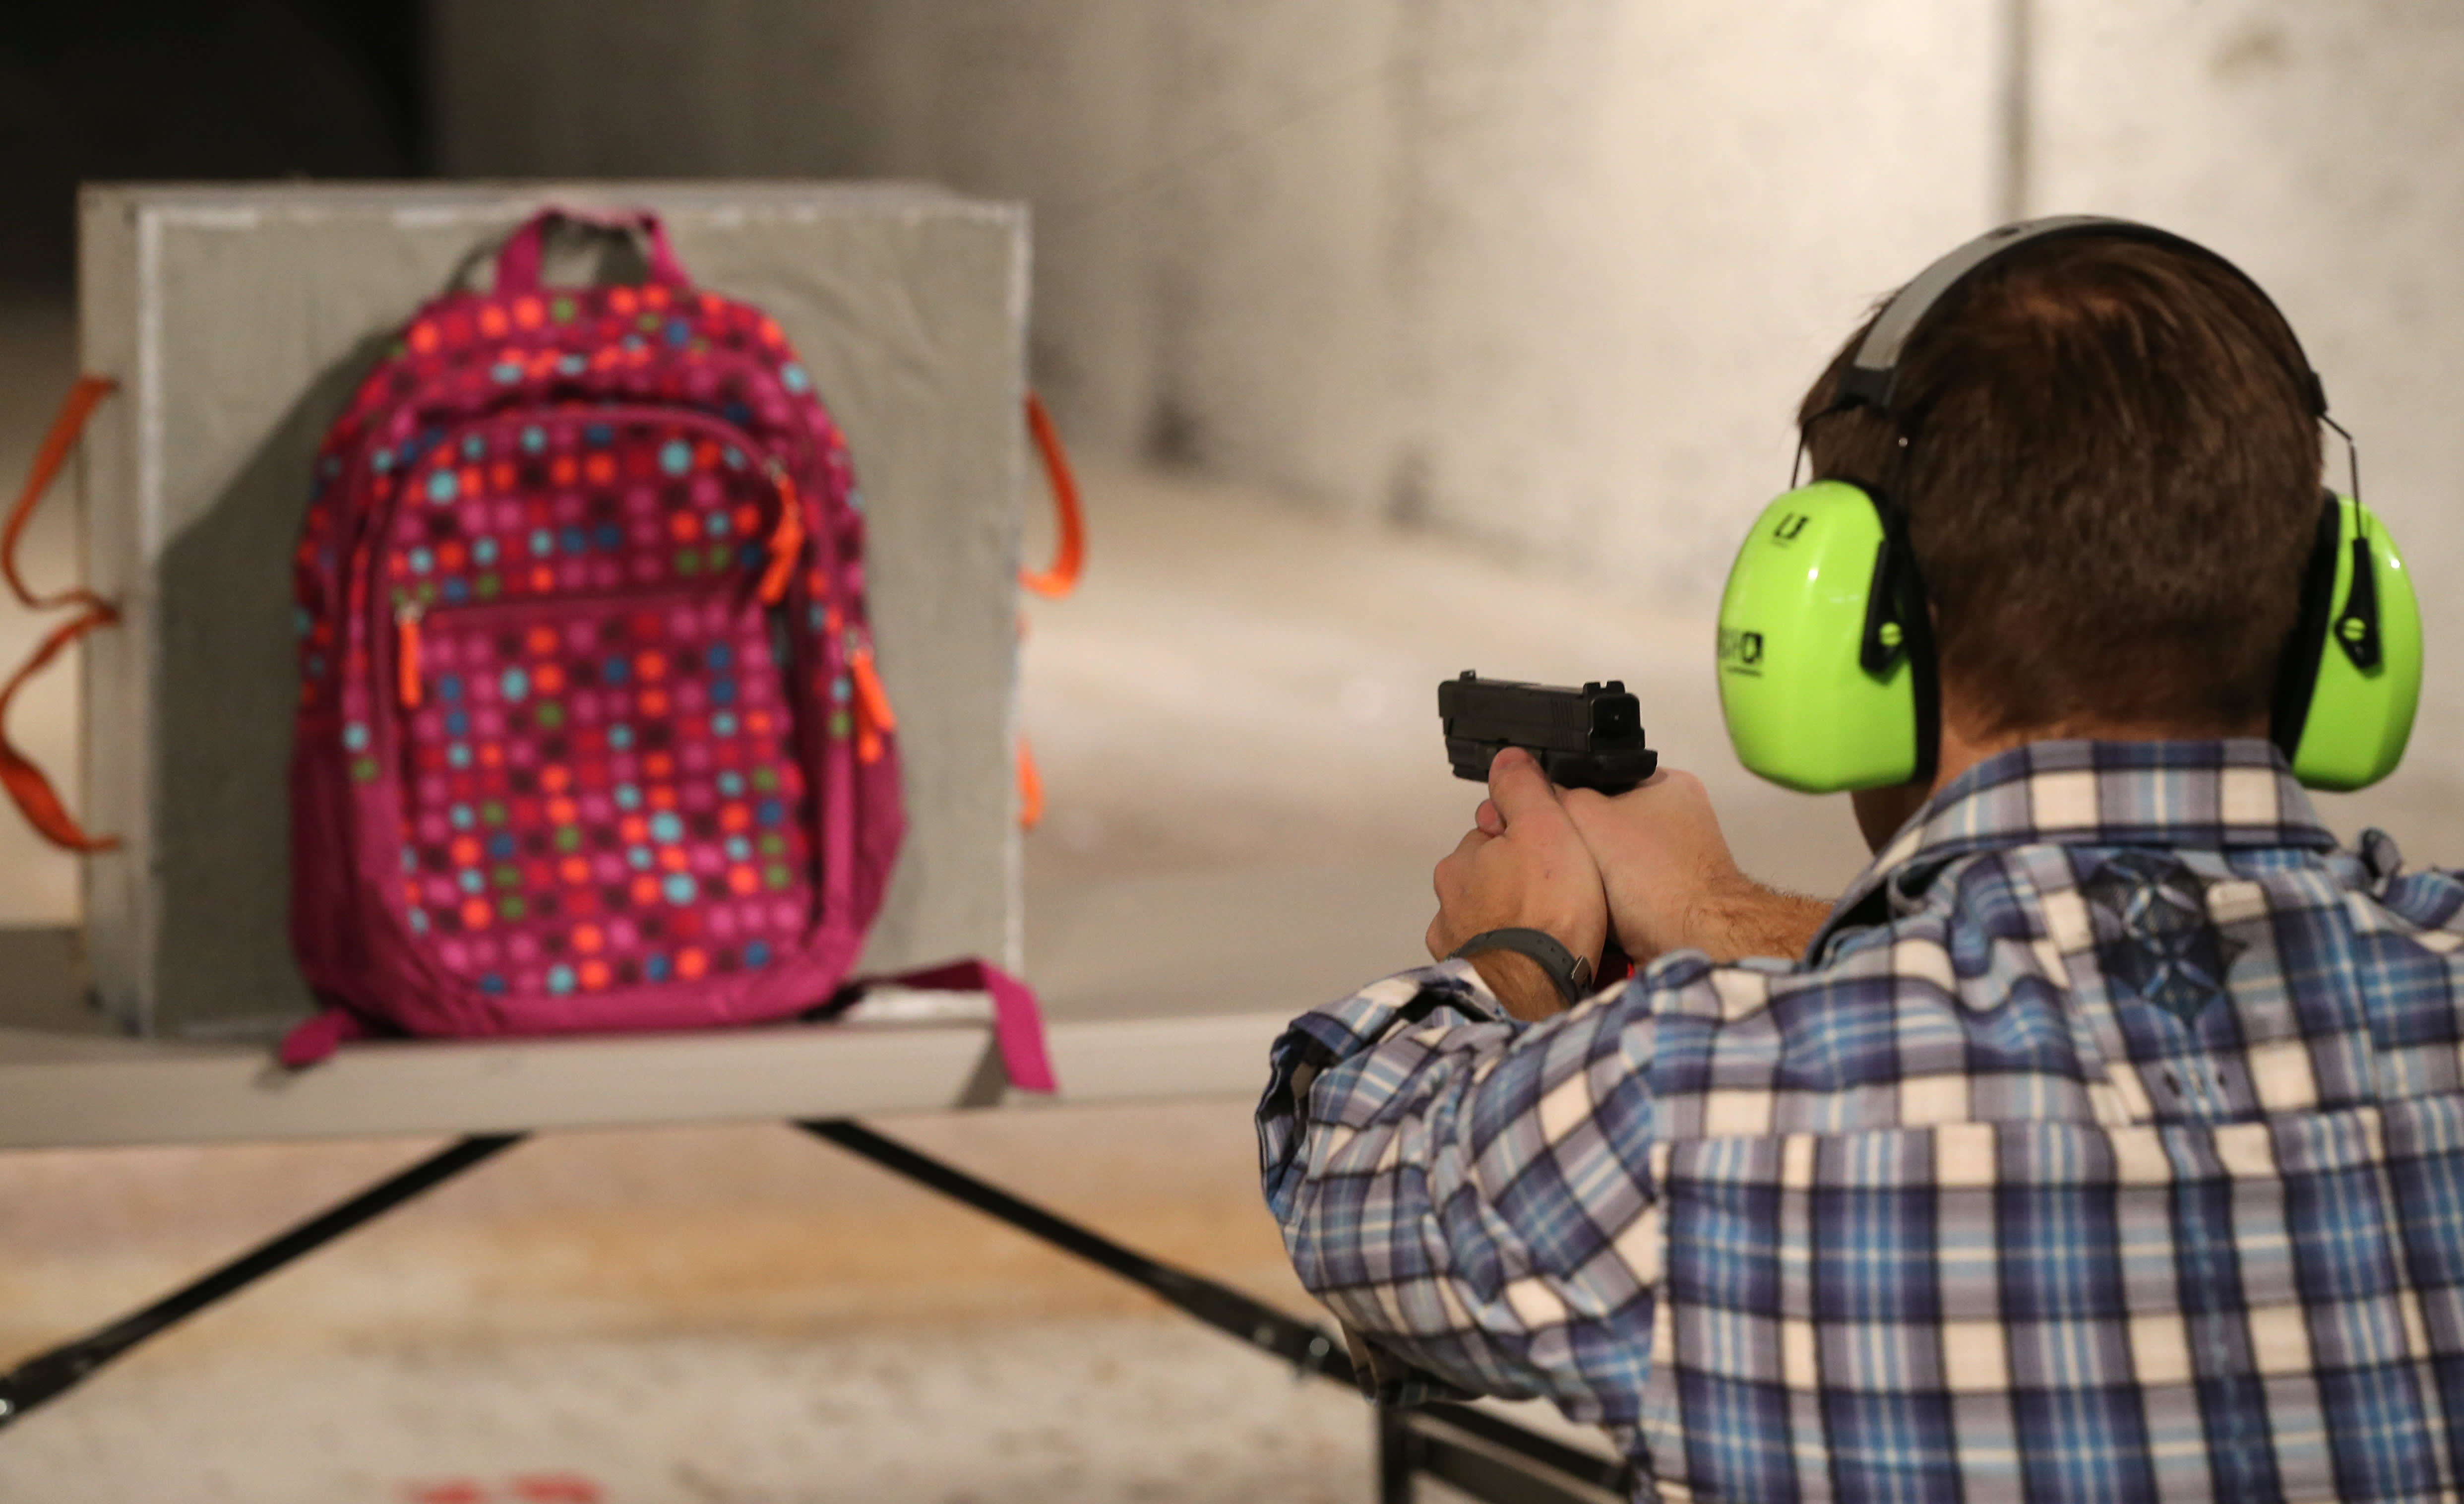 Bulletproof backpacks have become another back-to-school staple